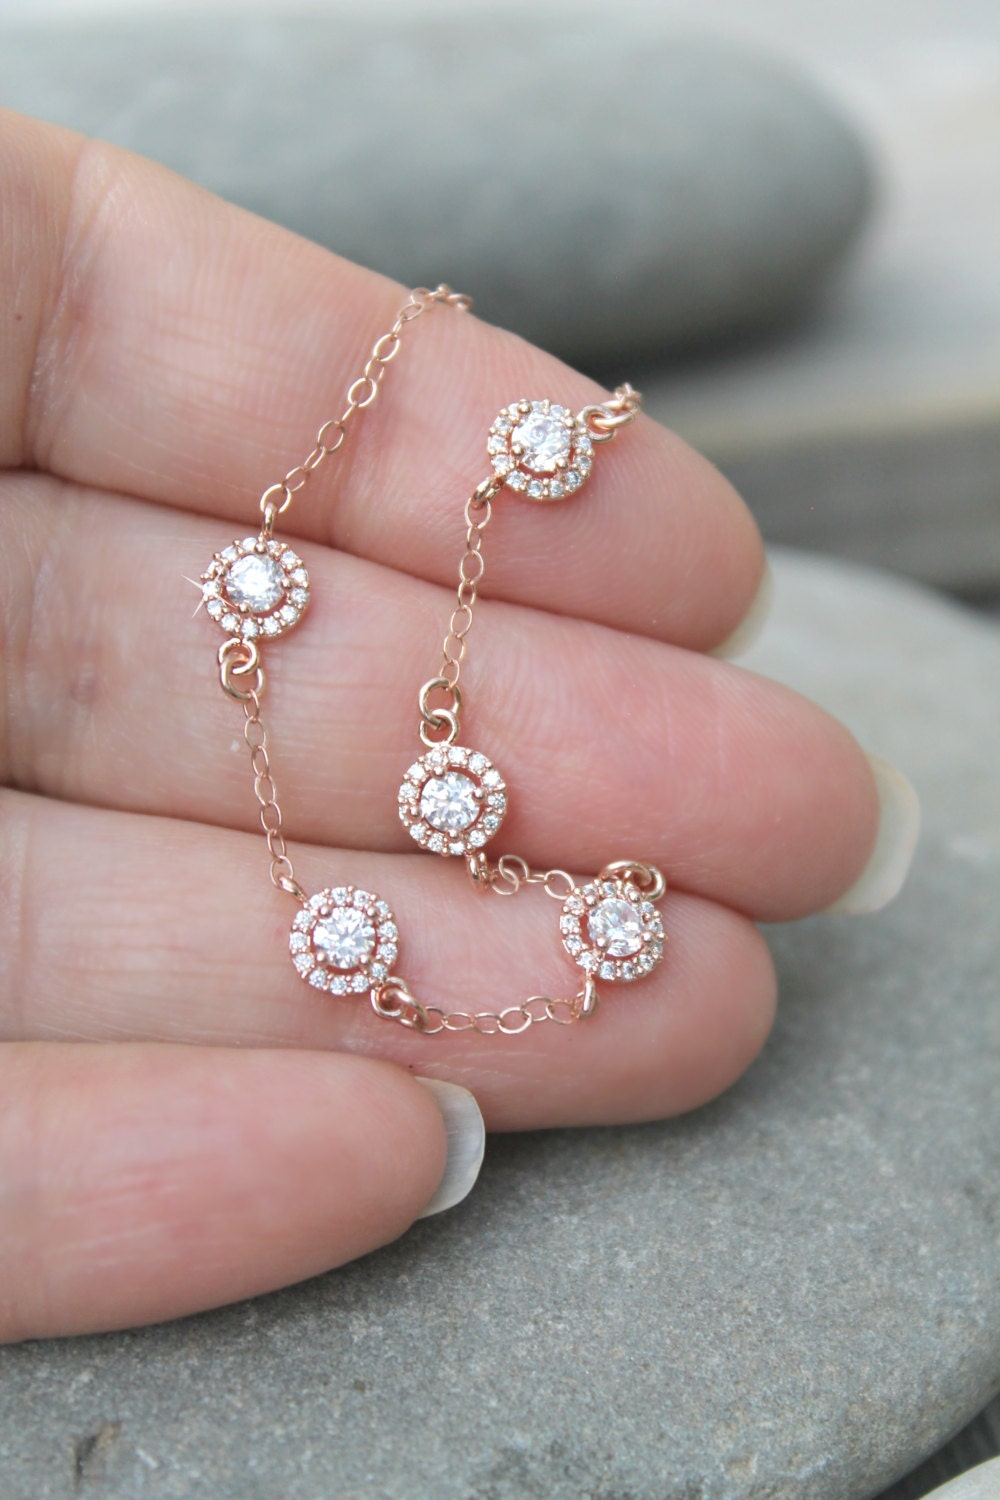 Diamond Anklet With Toe Ring Lc00035 In Anklets From: Dainty 14k Rose Gold Filled Bracelet With Cubic Zirconia